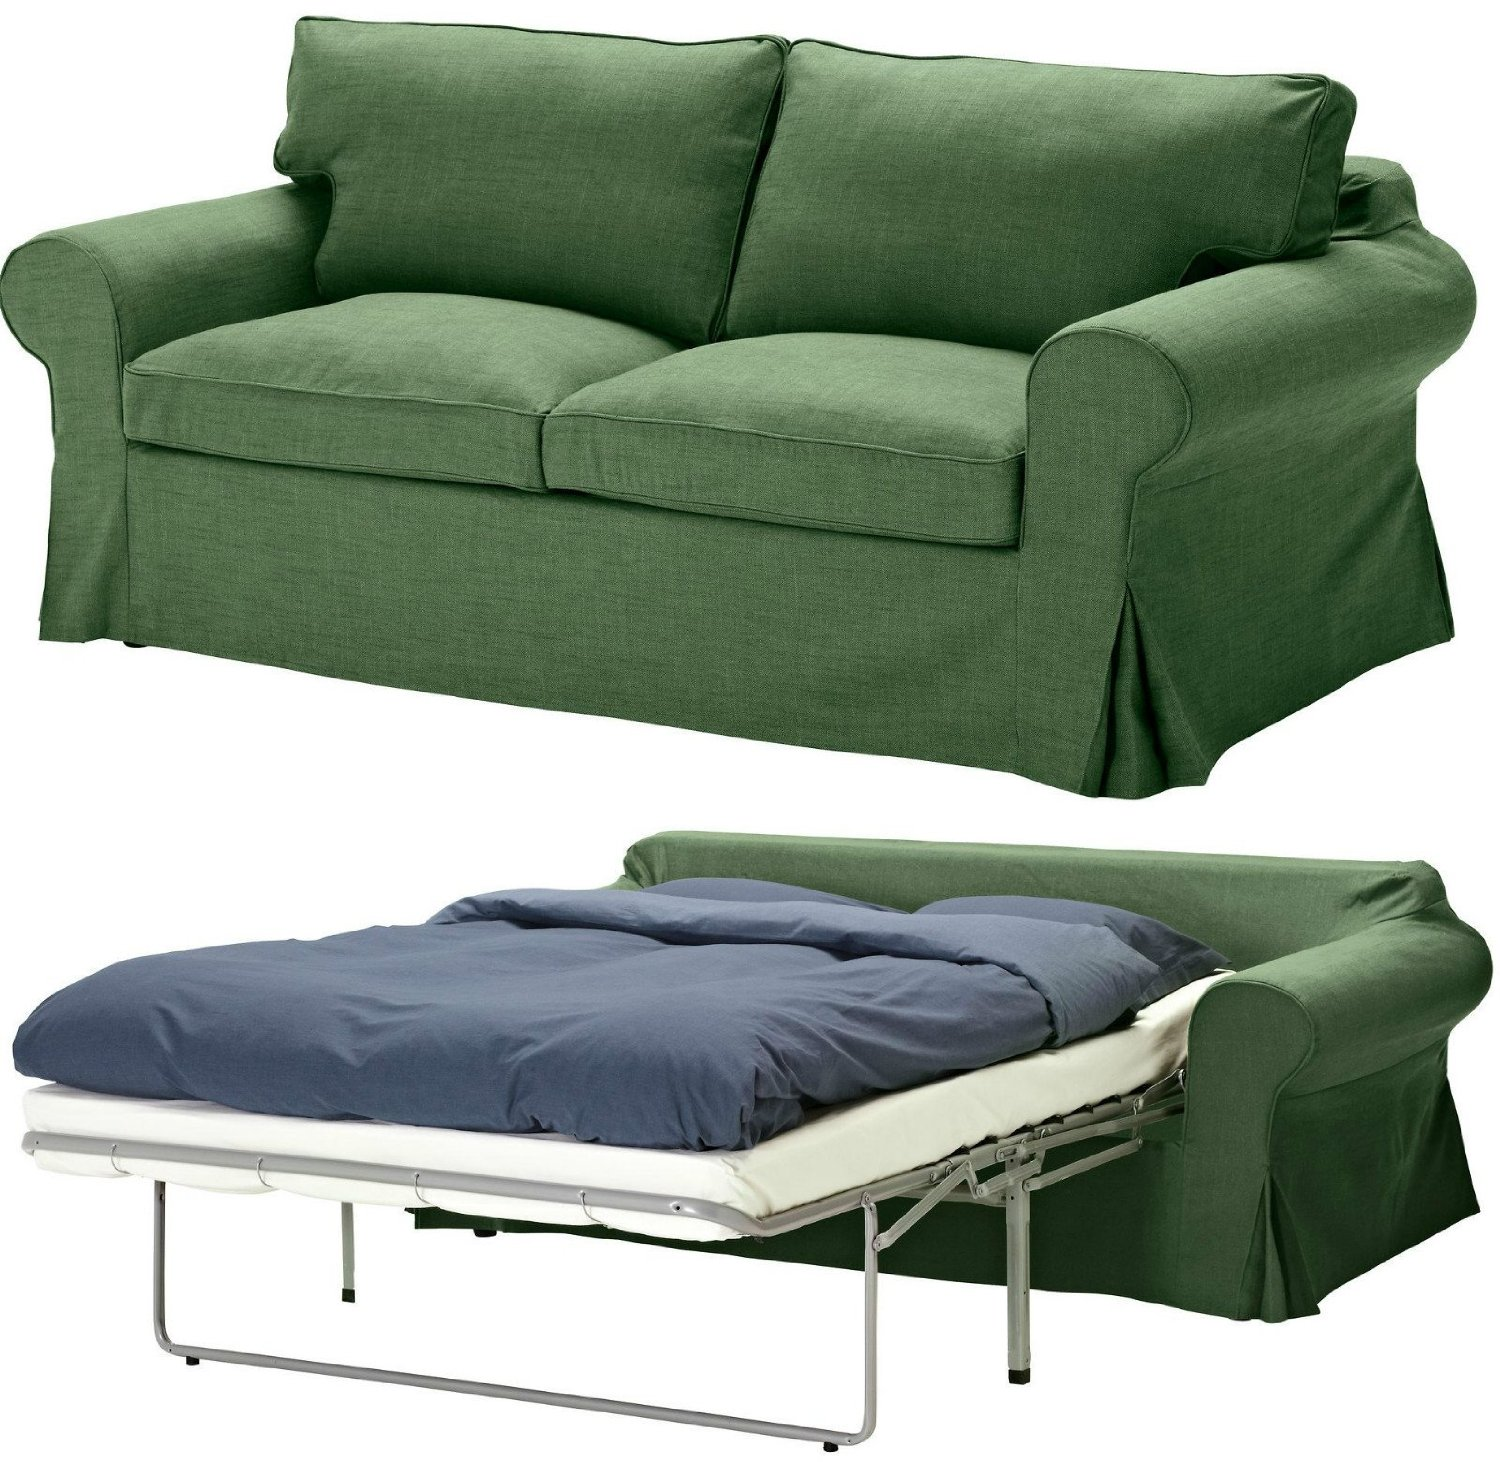 Image Result For Where Can I Buy A Cheap Futon